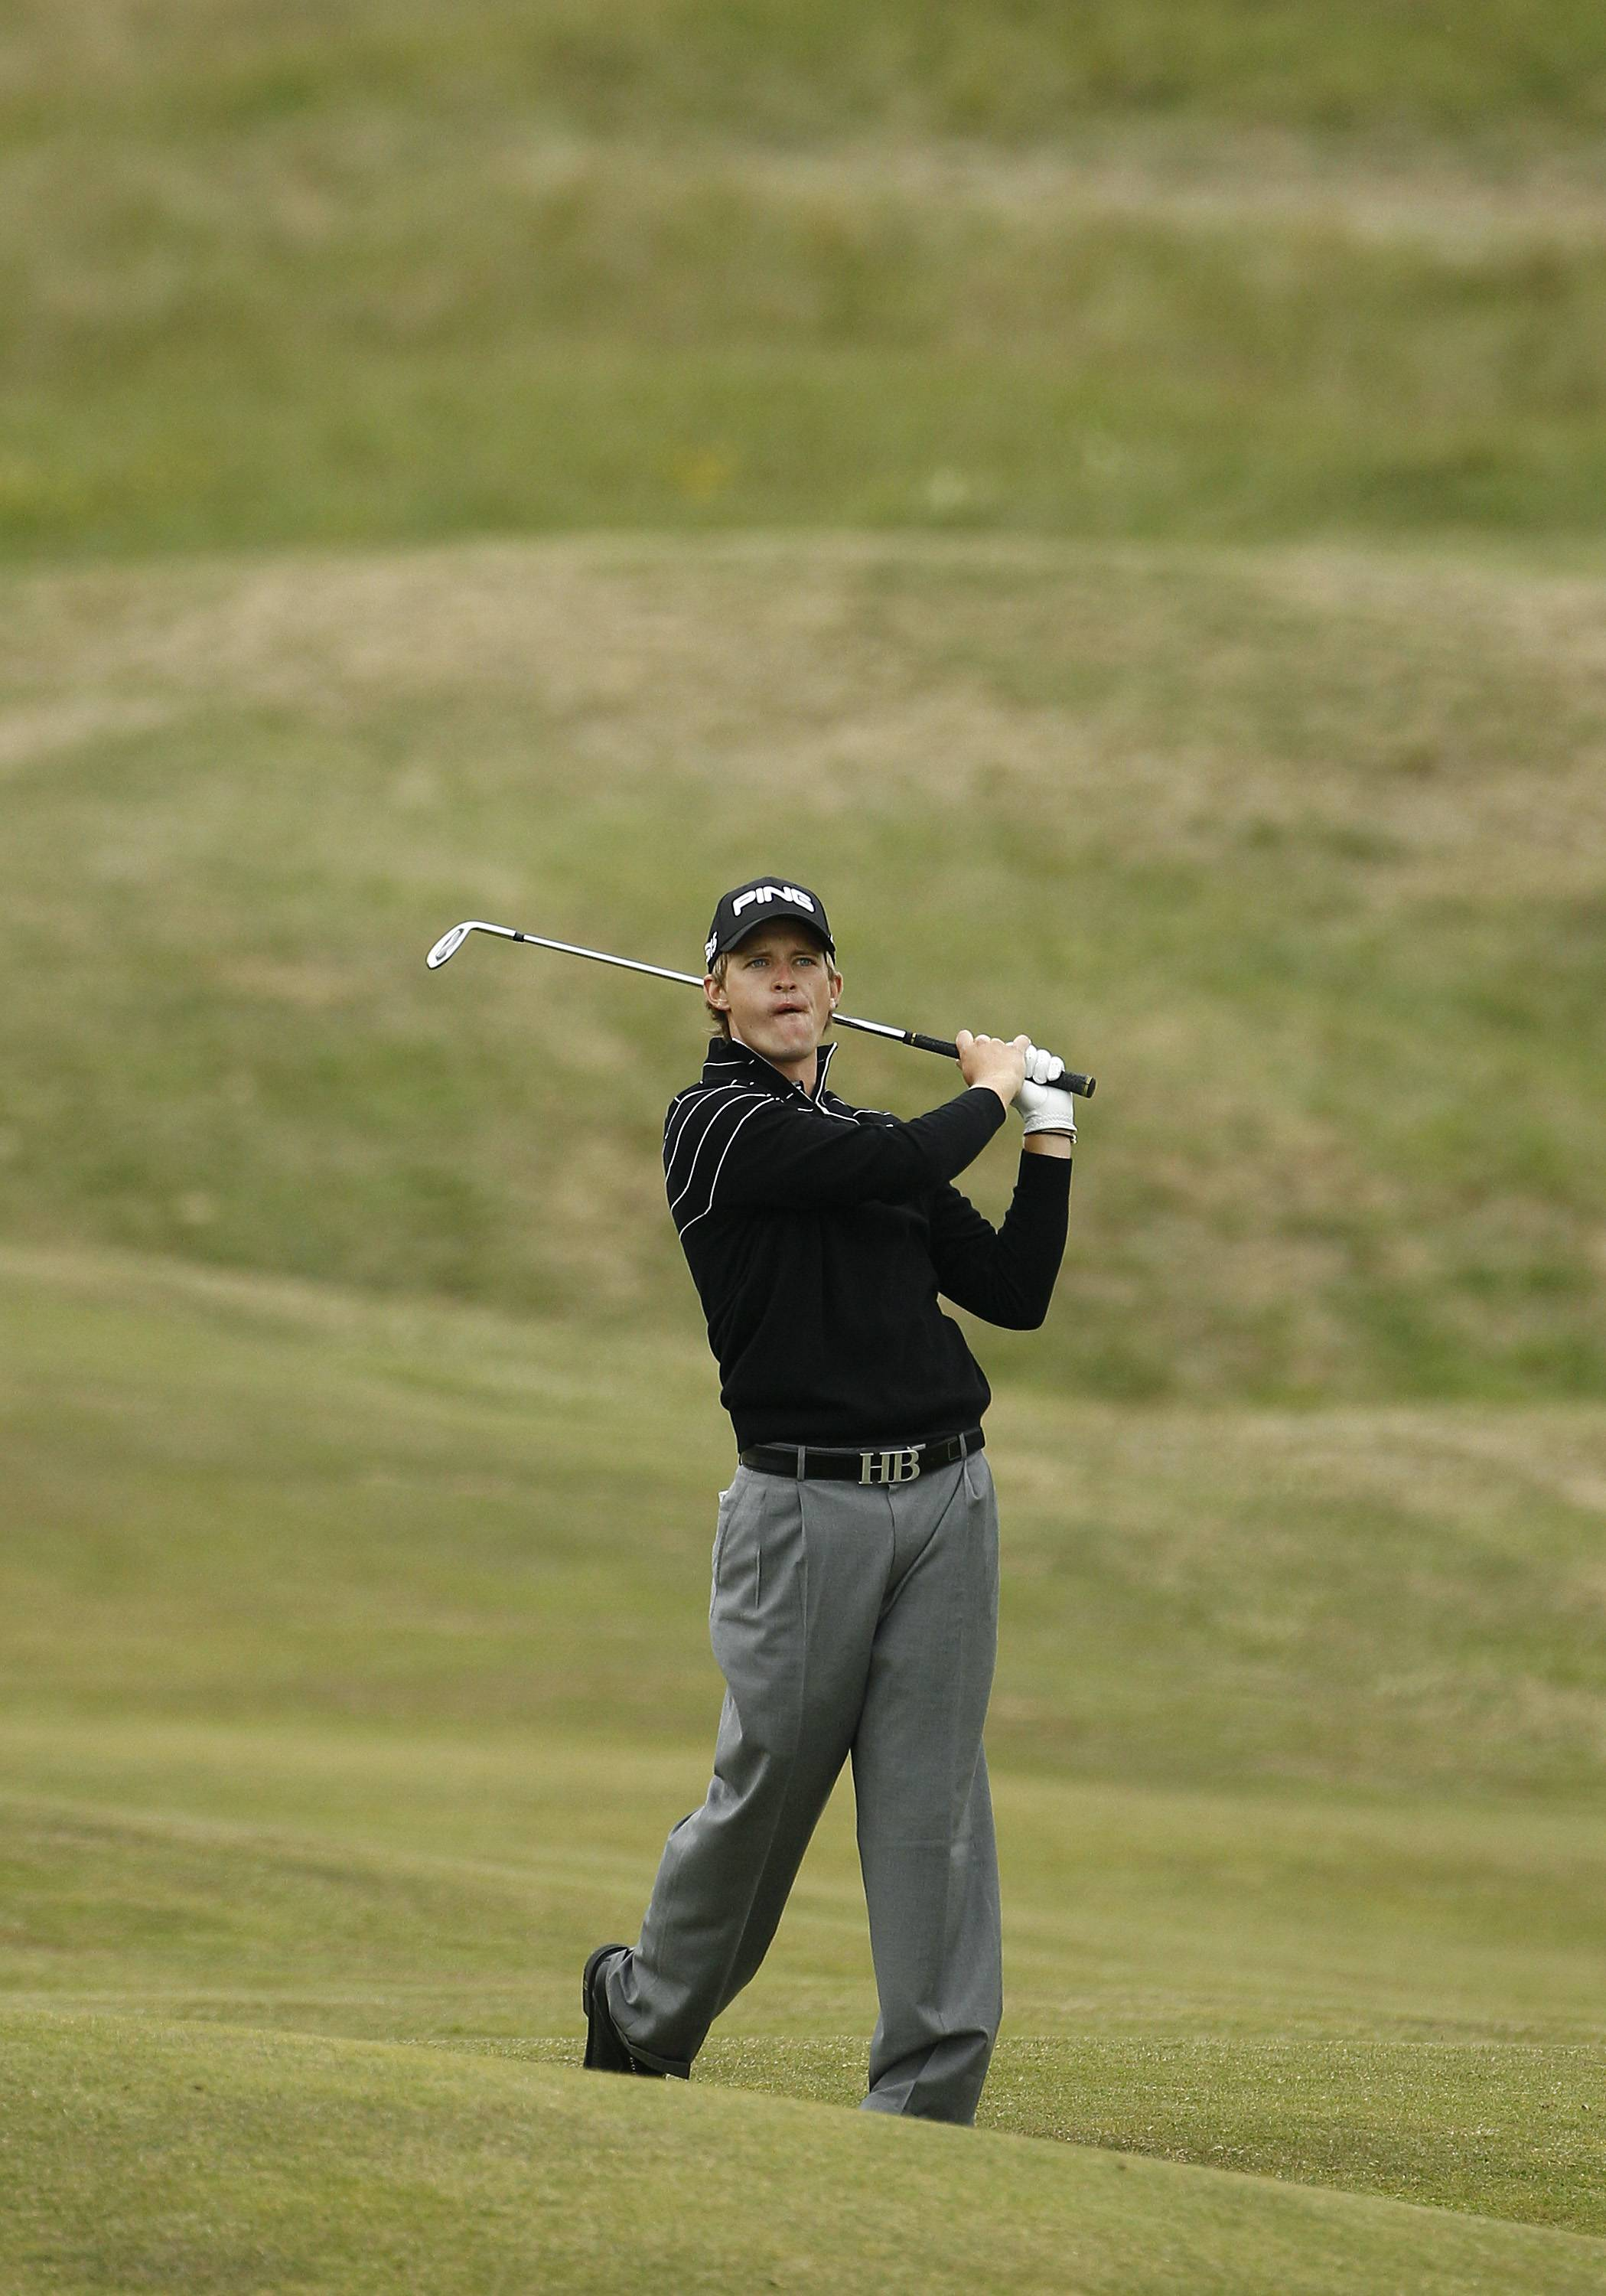 England's Tom Lewis shot a 65 Thursday at the British Open Championship at Royal St George's golf course Sandwich, England.